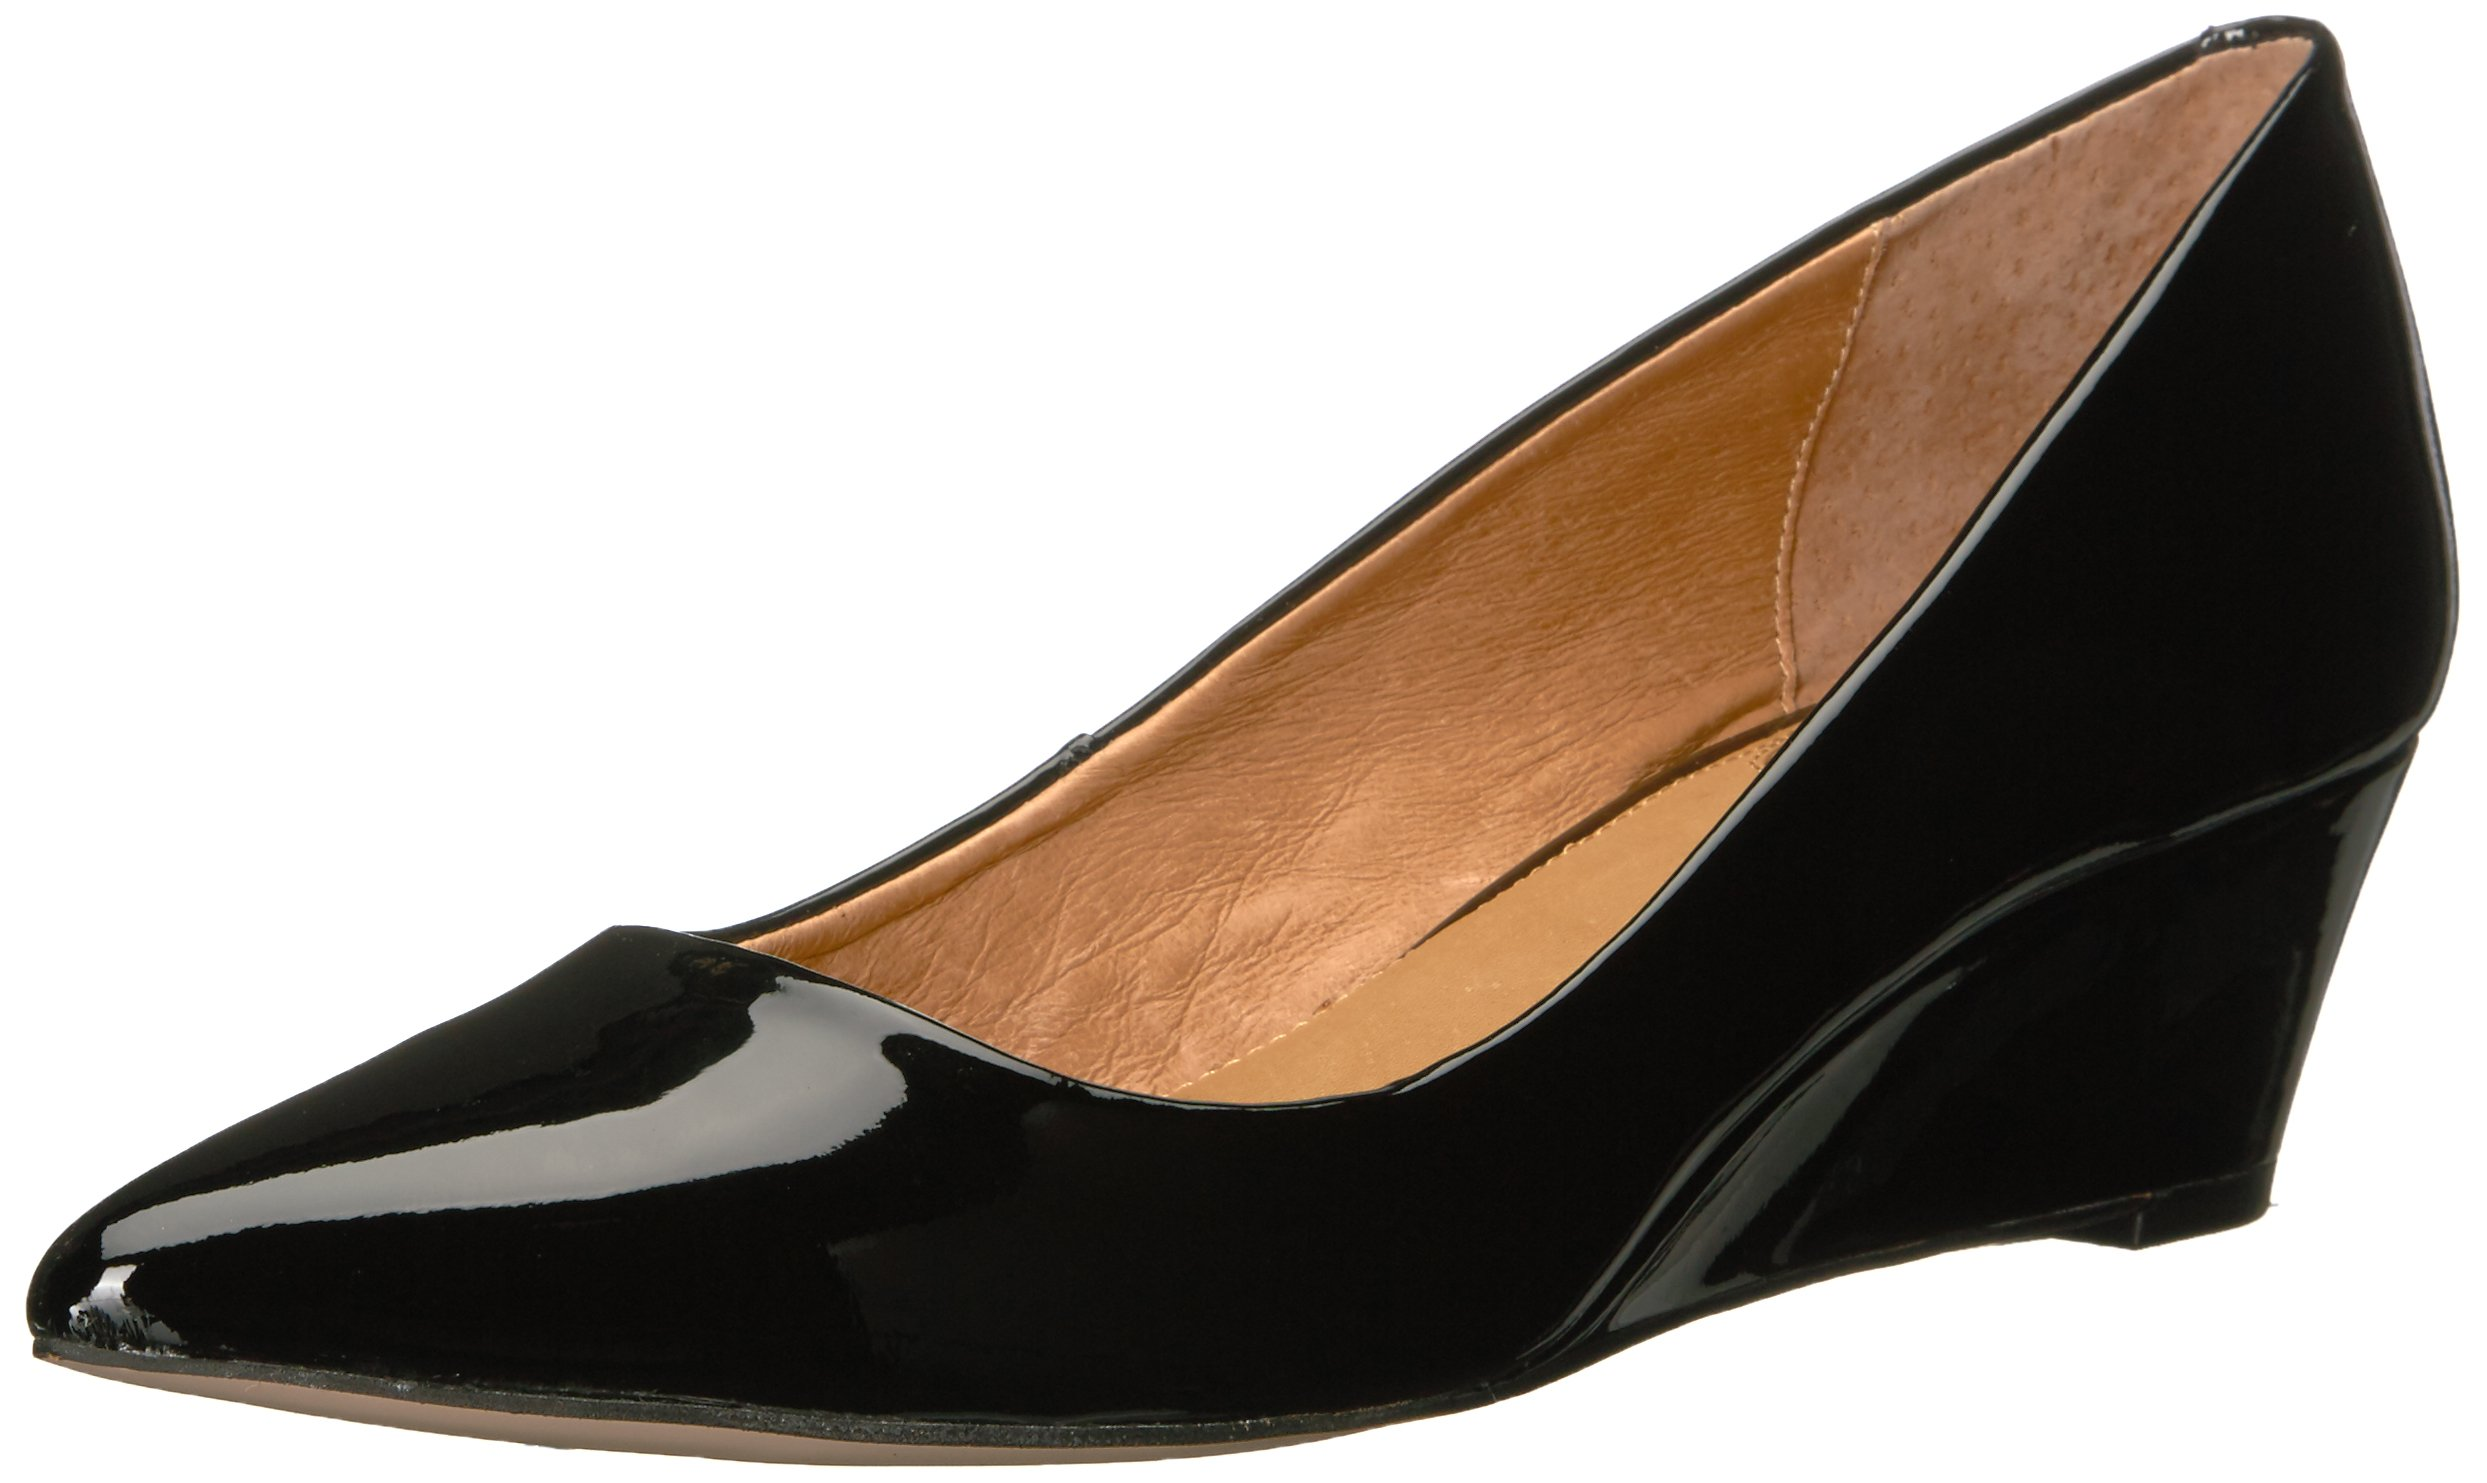 Opportunity Shoes - Corso Como Women's Nelly Pump, Black Patent, 10 Medium US